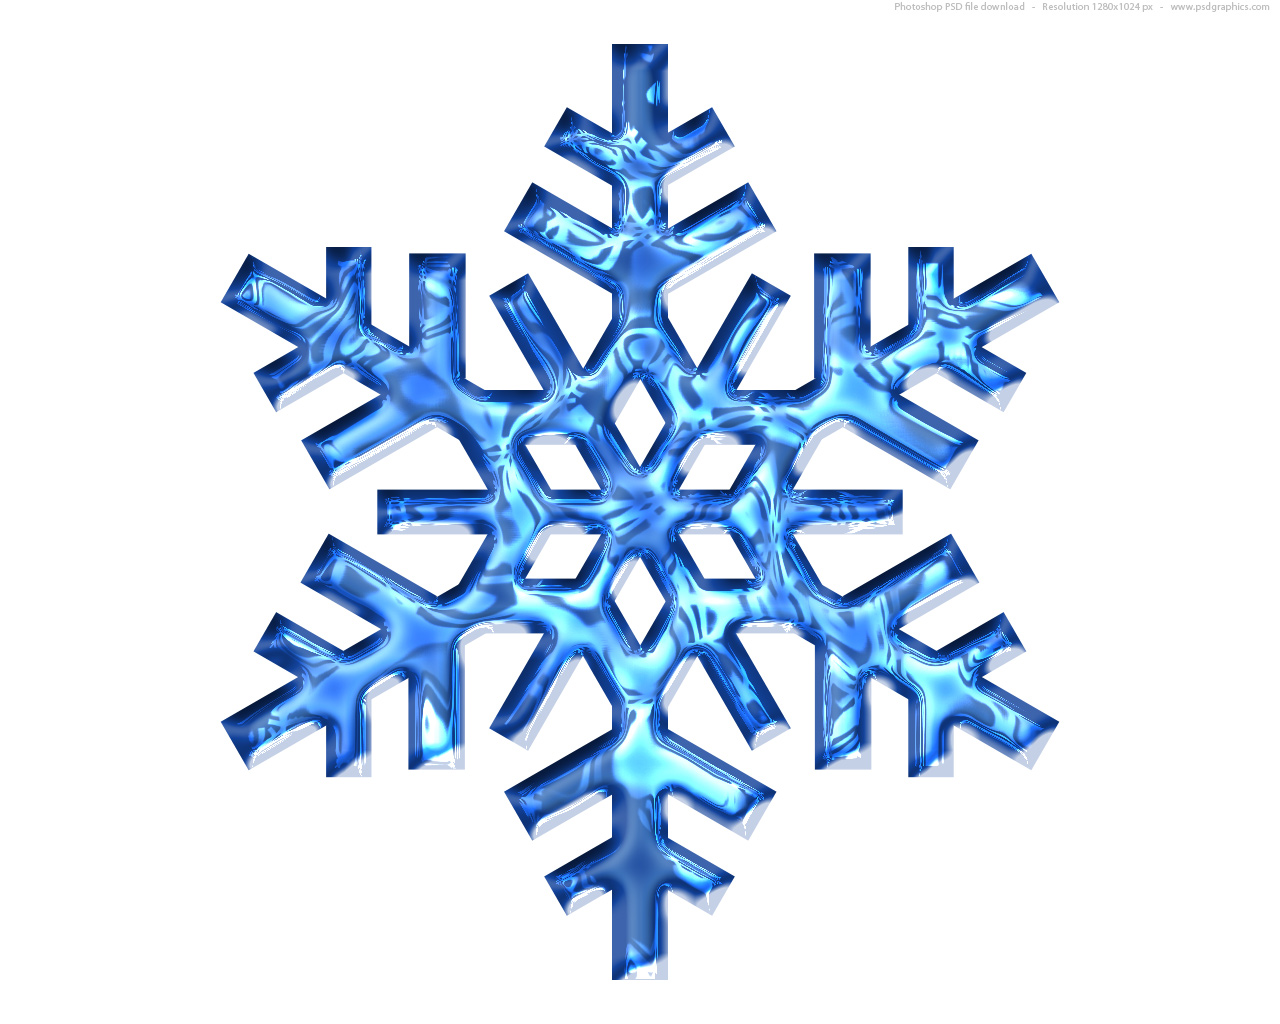 Full Size Jpg Preview Blue Snowflake Icon clipart free image.